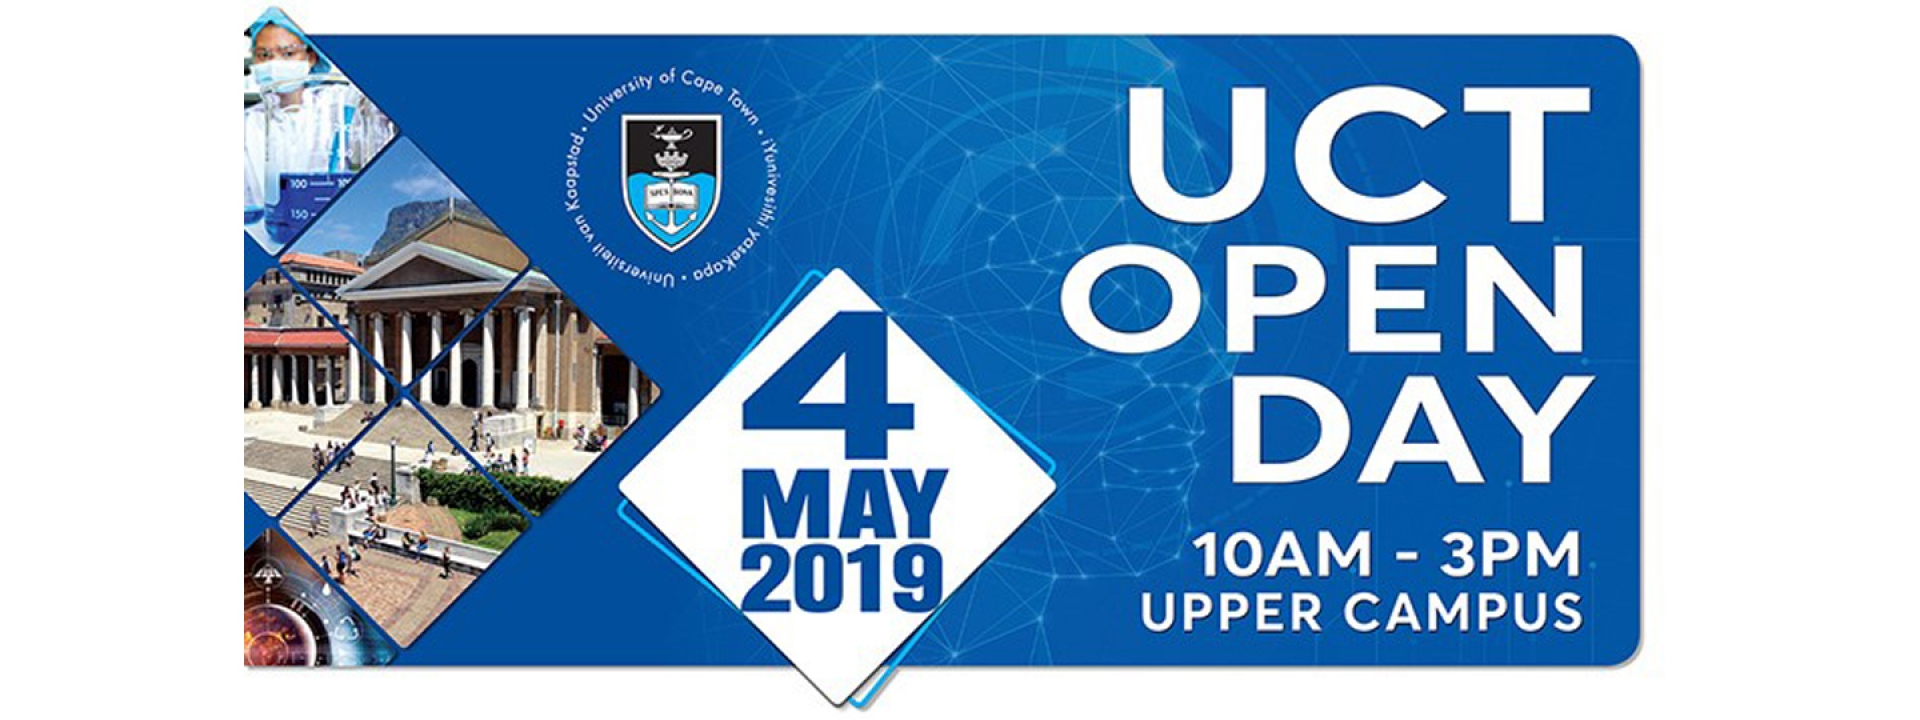 UCT Open Day 2019